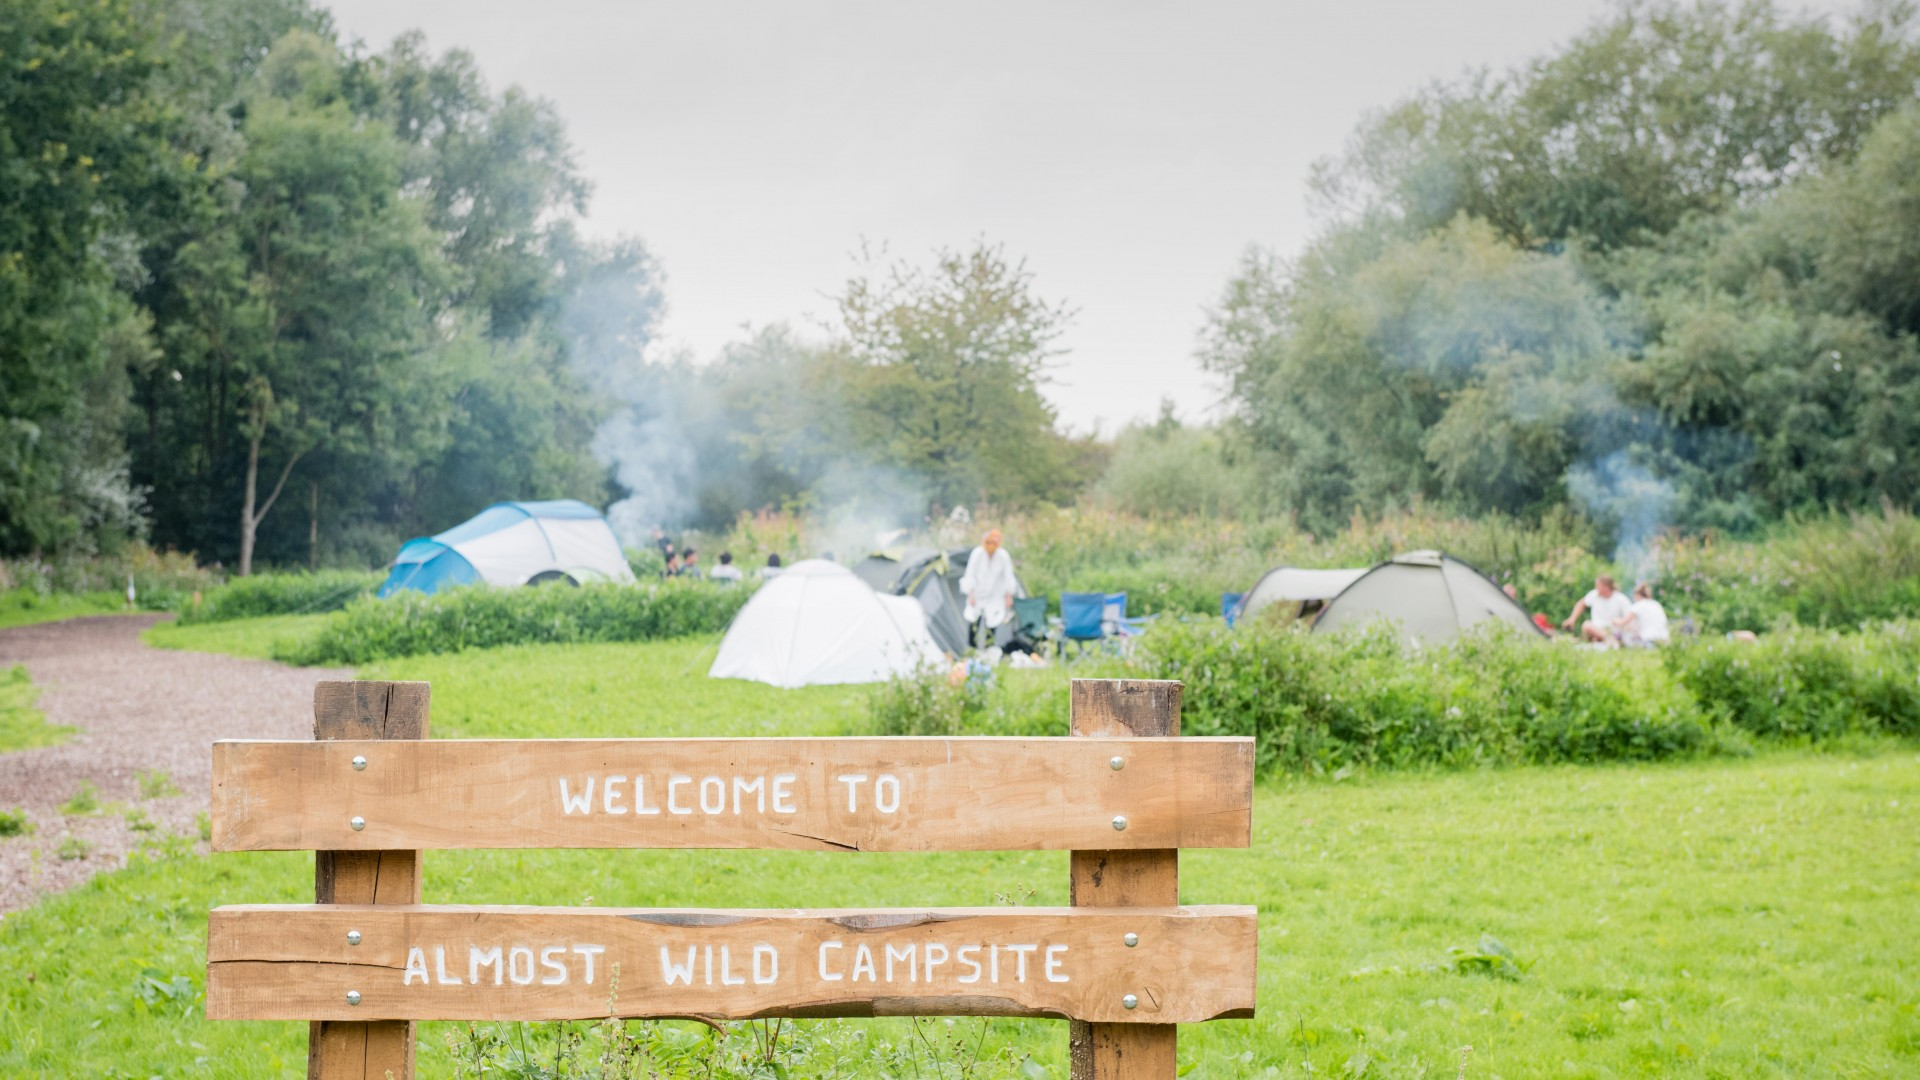 The Lee Valley Almost Wild Campsite near London